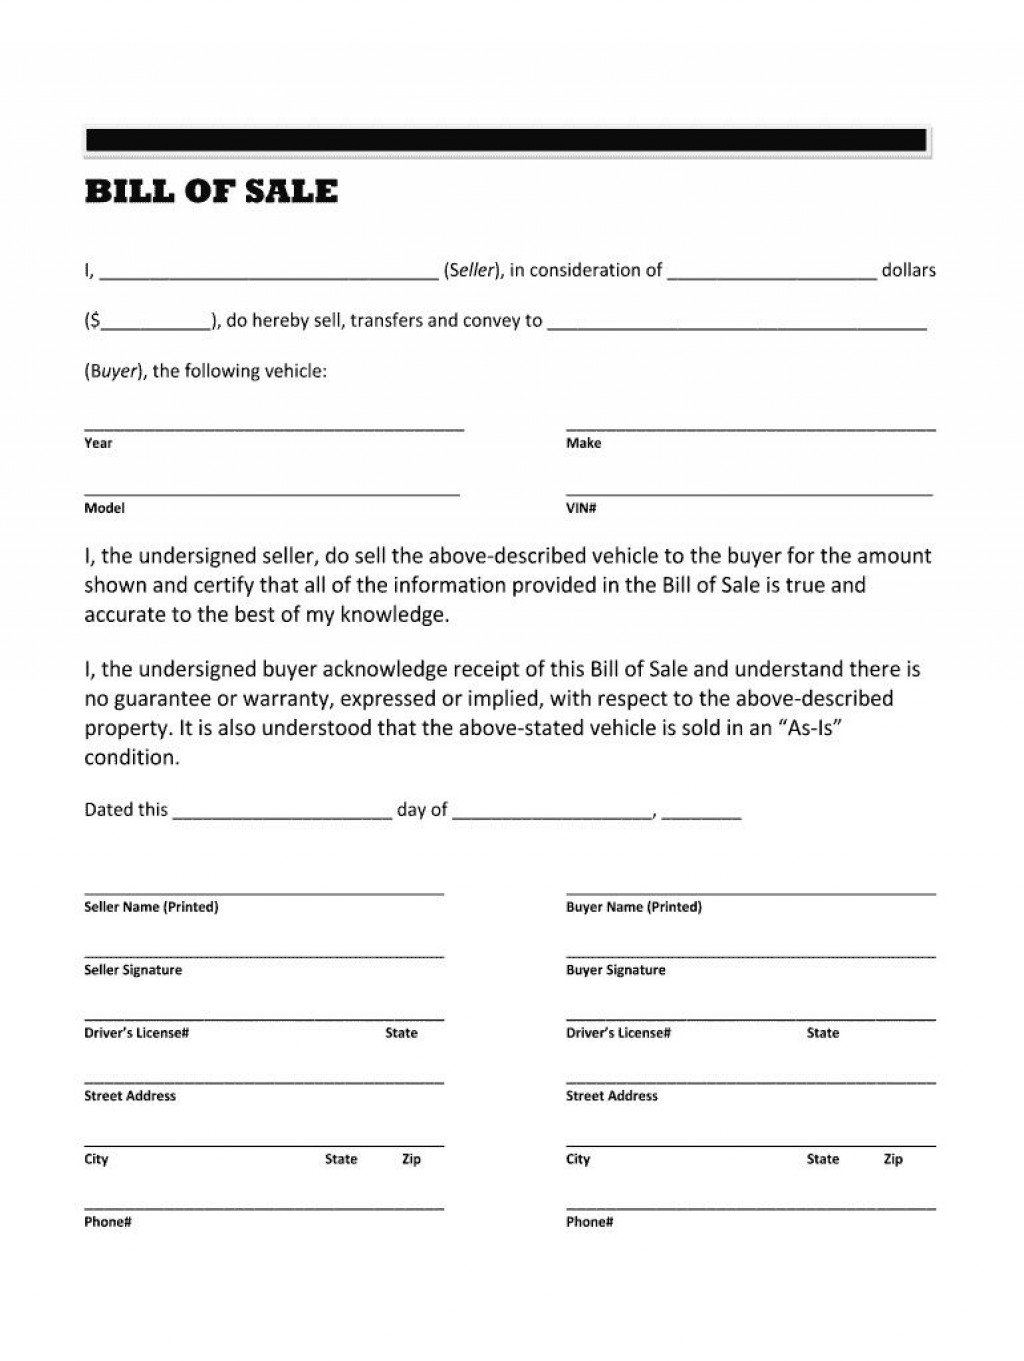 004 Imposing Template For Bill Of Sale High Resolution  Example Trailer Free Mobile Home Used CarLarge